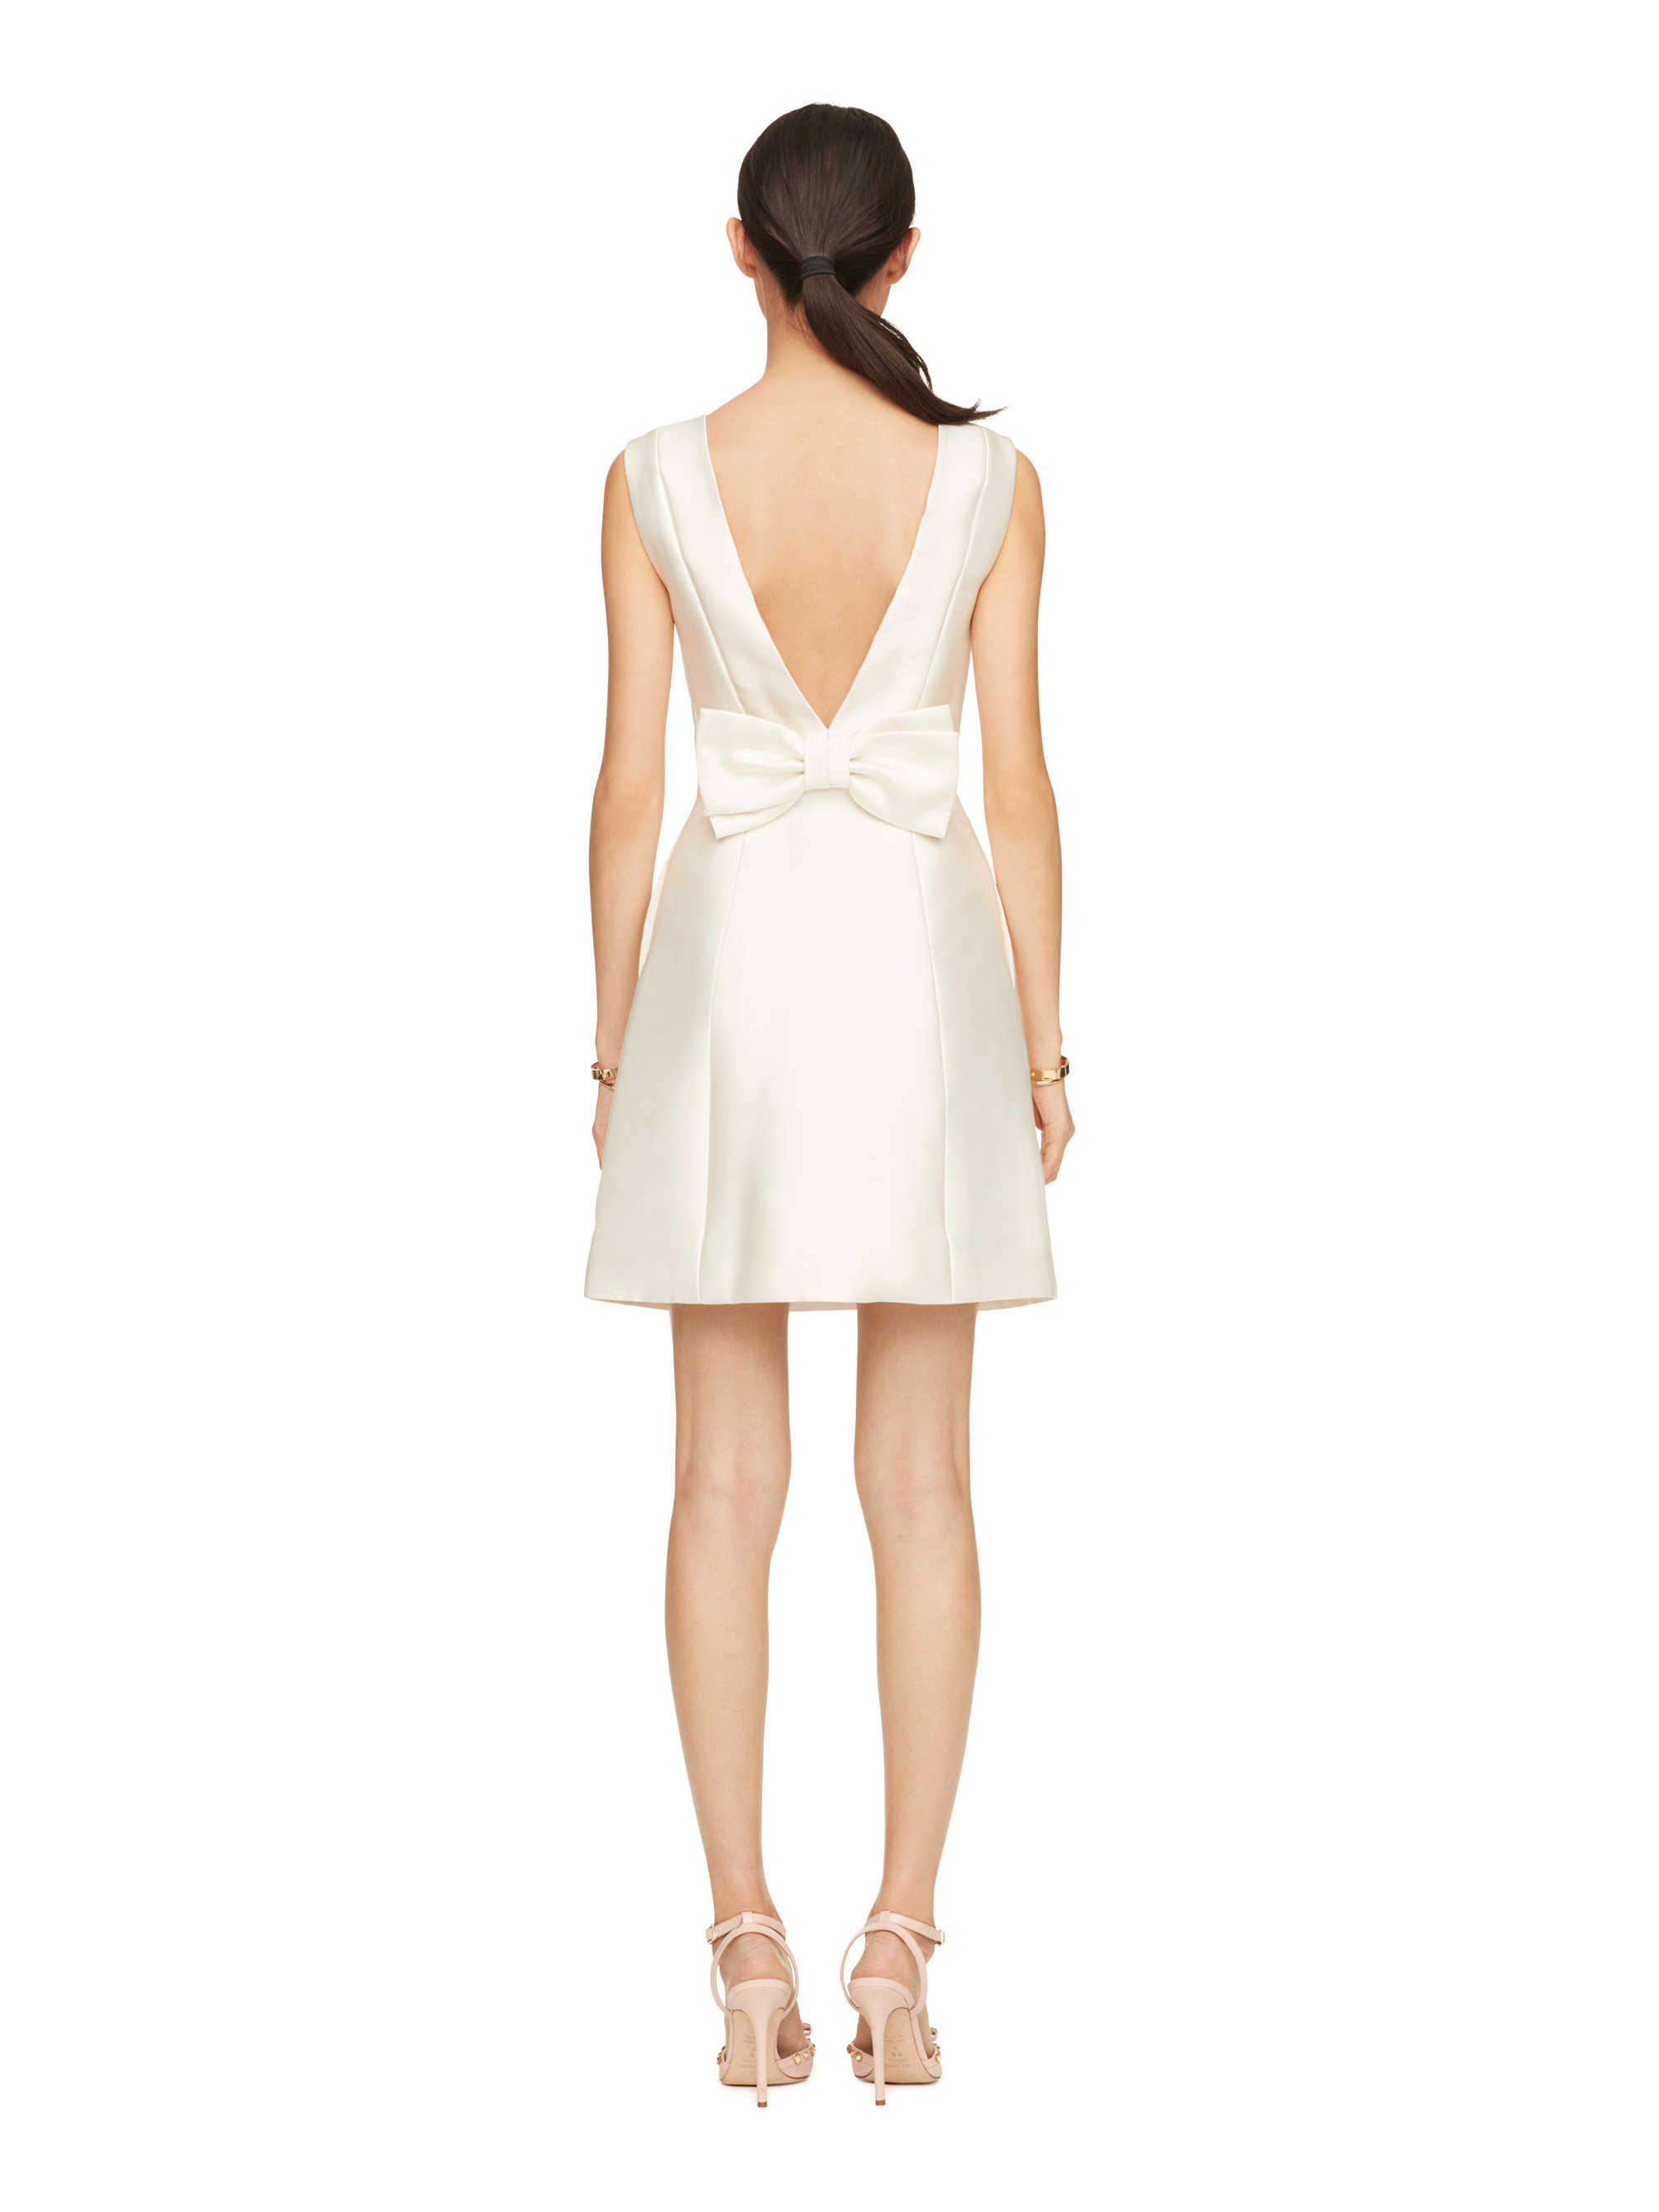 Kate spade new york Open Back Bow Dress in Natural